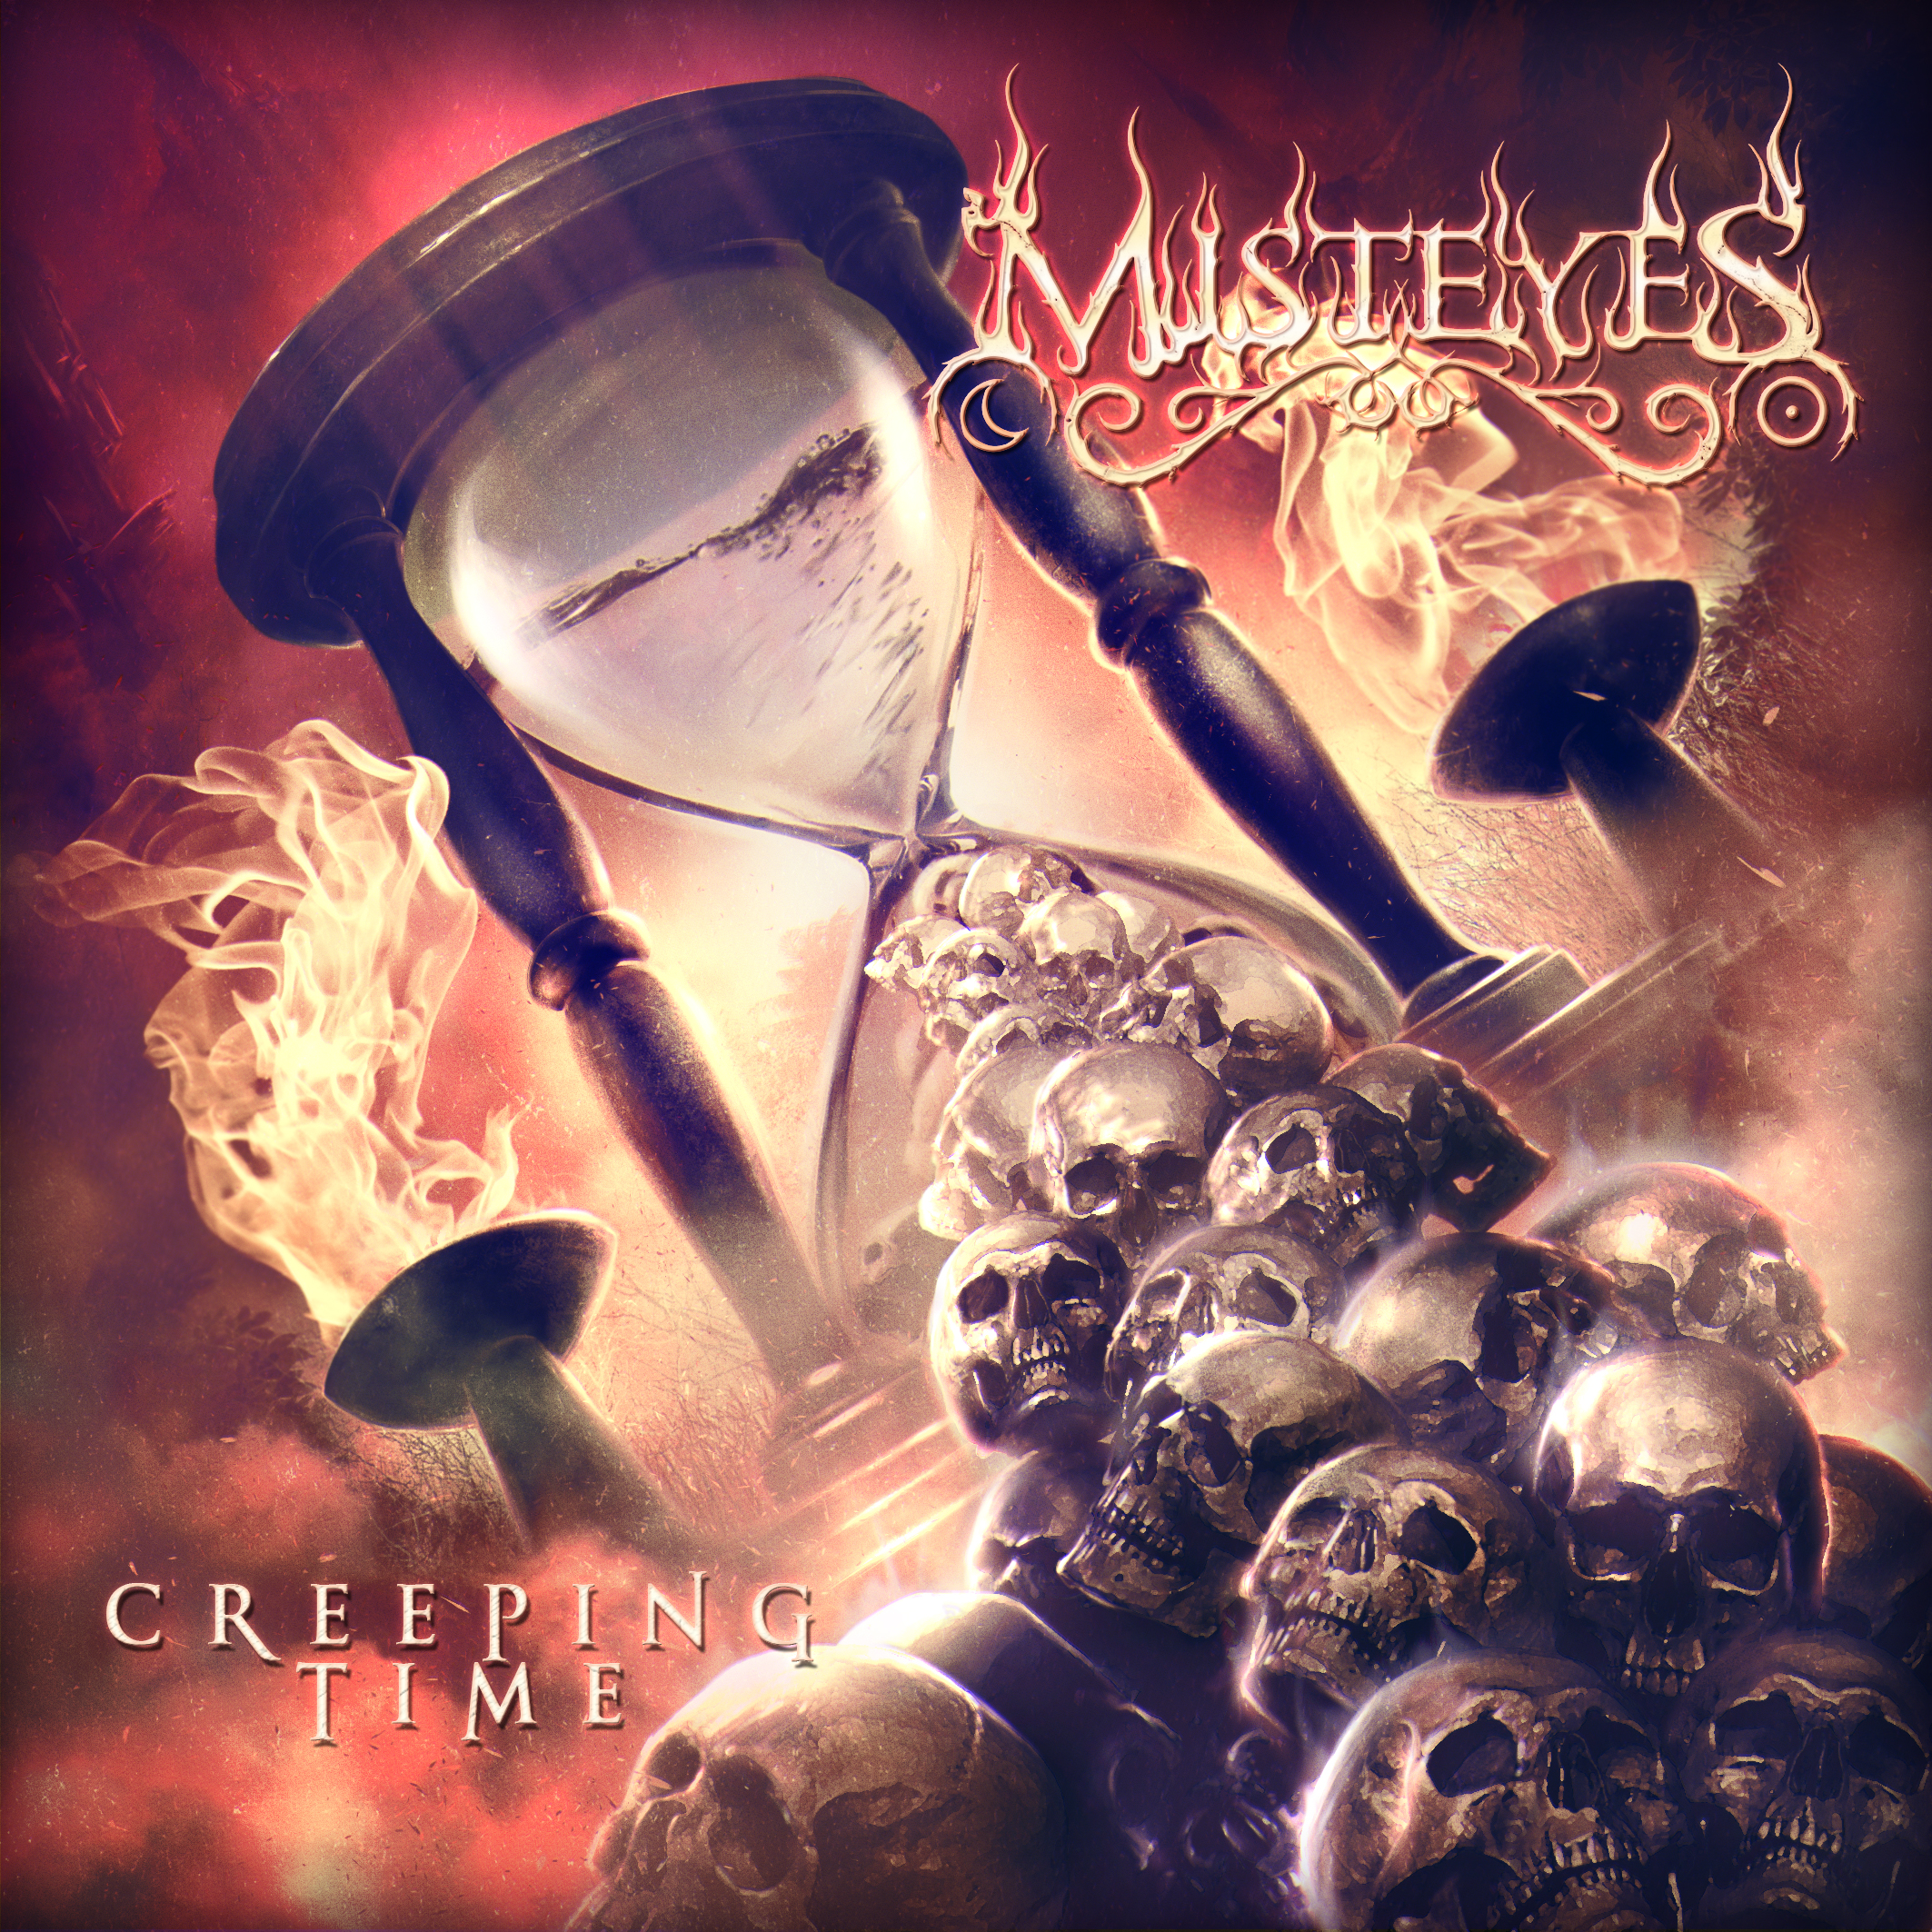 Creeping Time - Front Cover Artwork